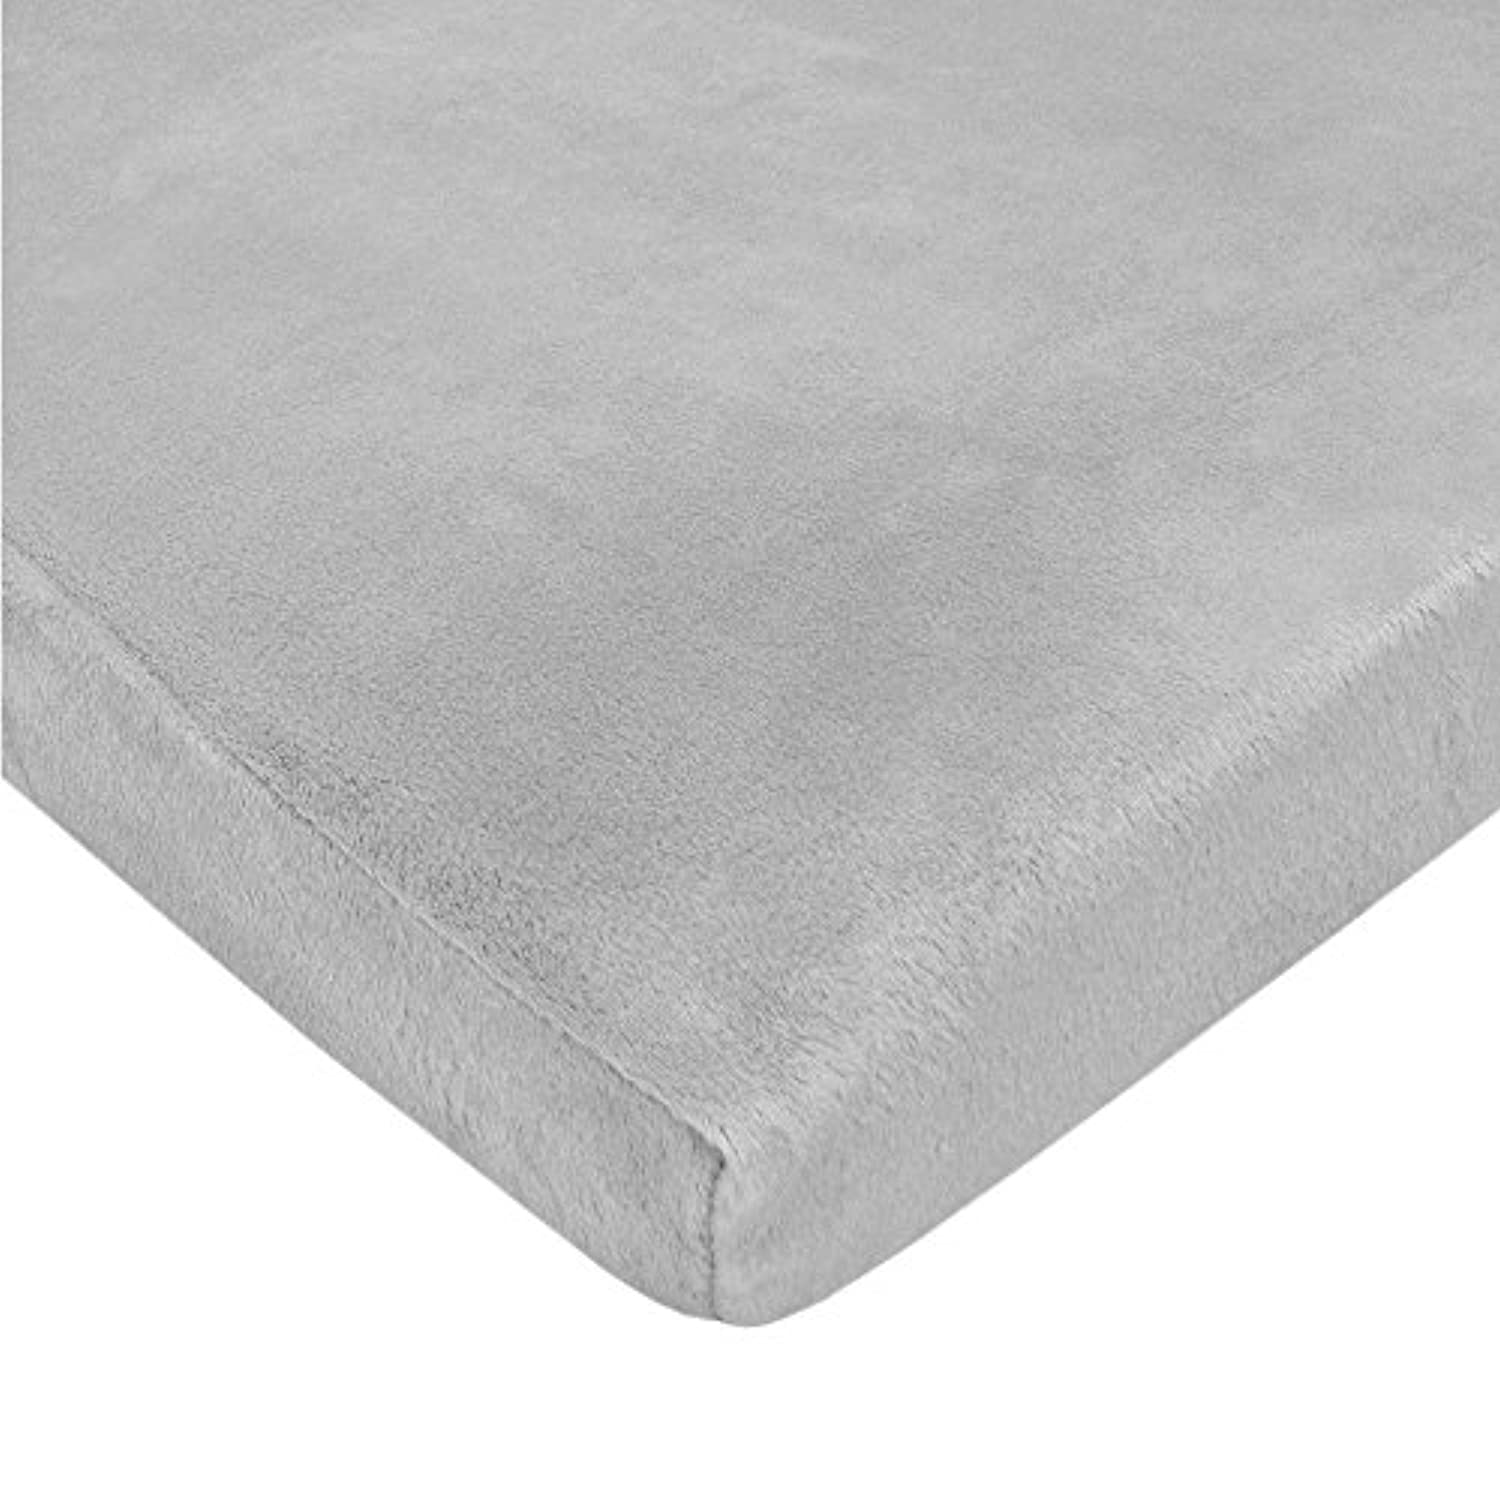 TL Care Heavenly Soft Chenille Fitted Pack 'n Play Playard Sheet, Gray by TL Care